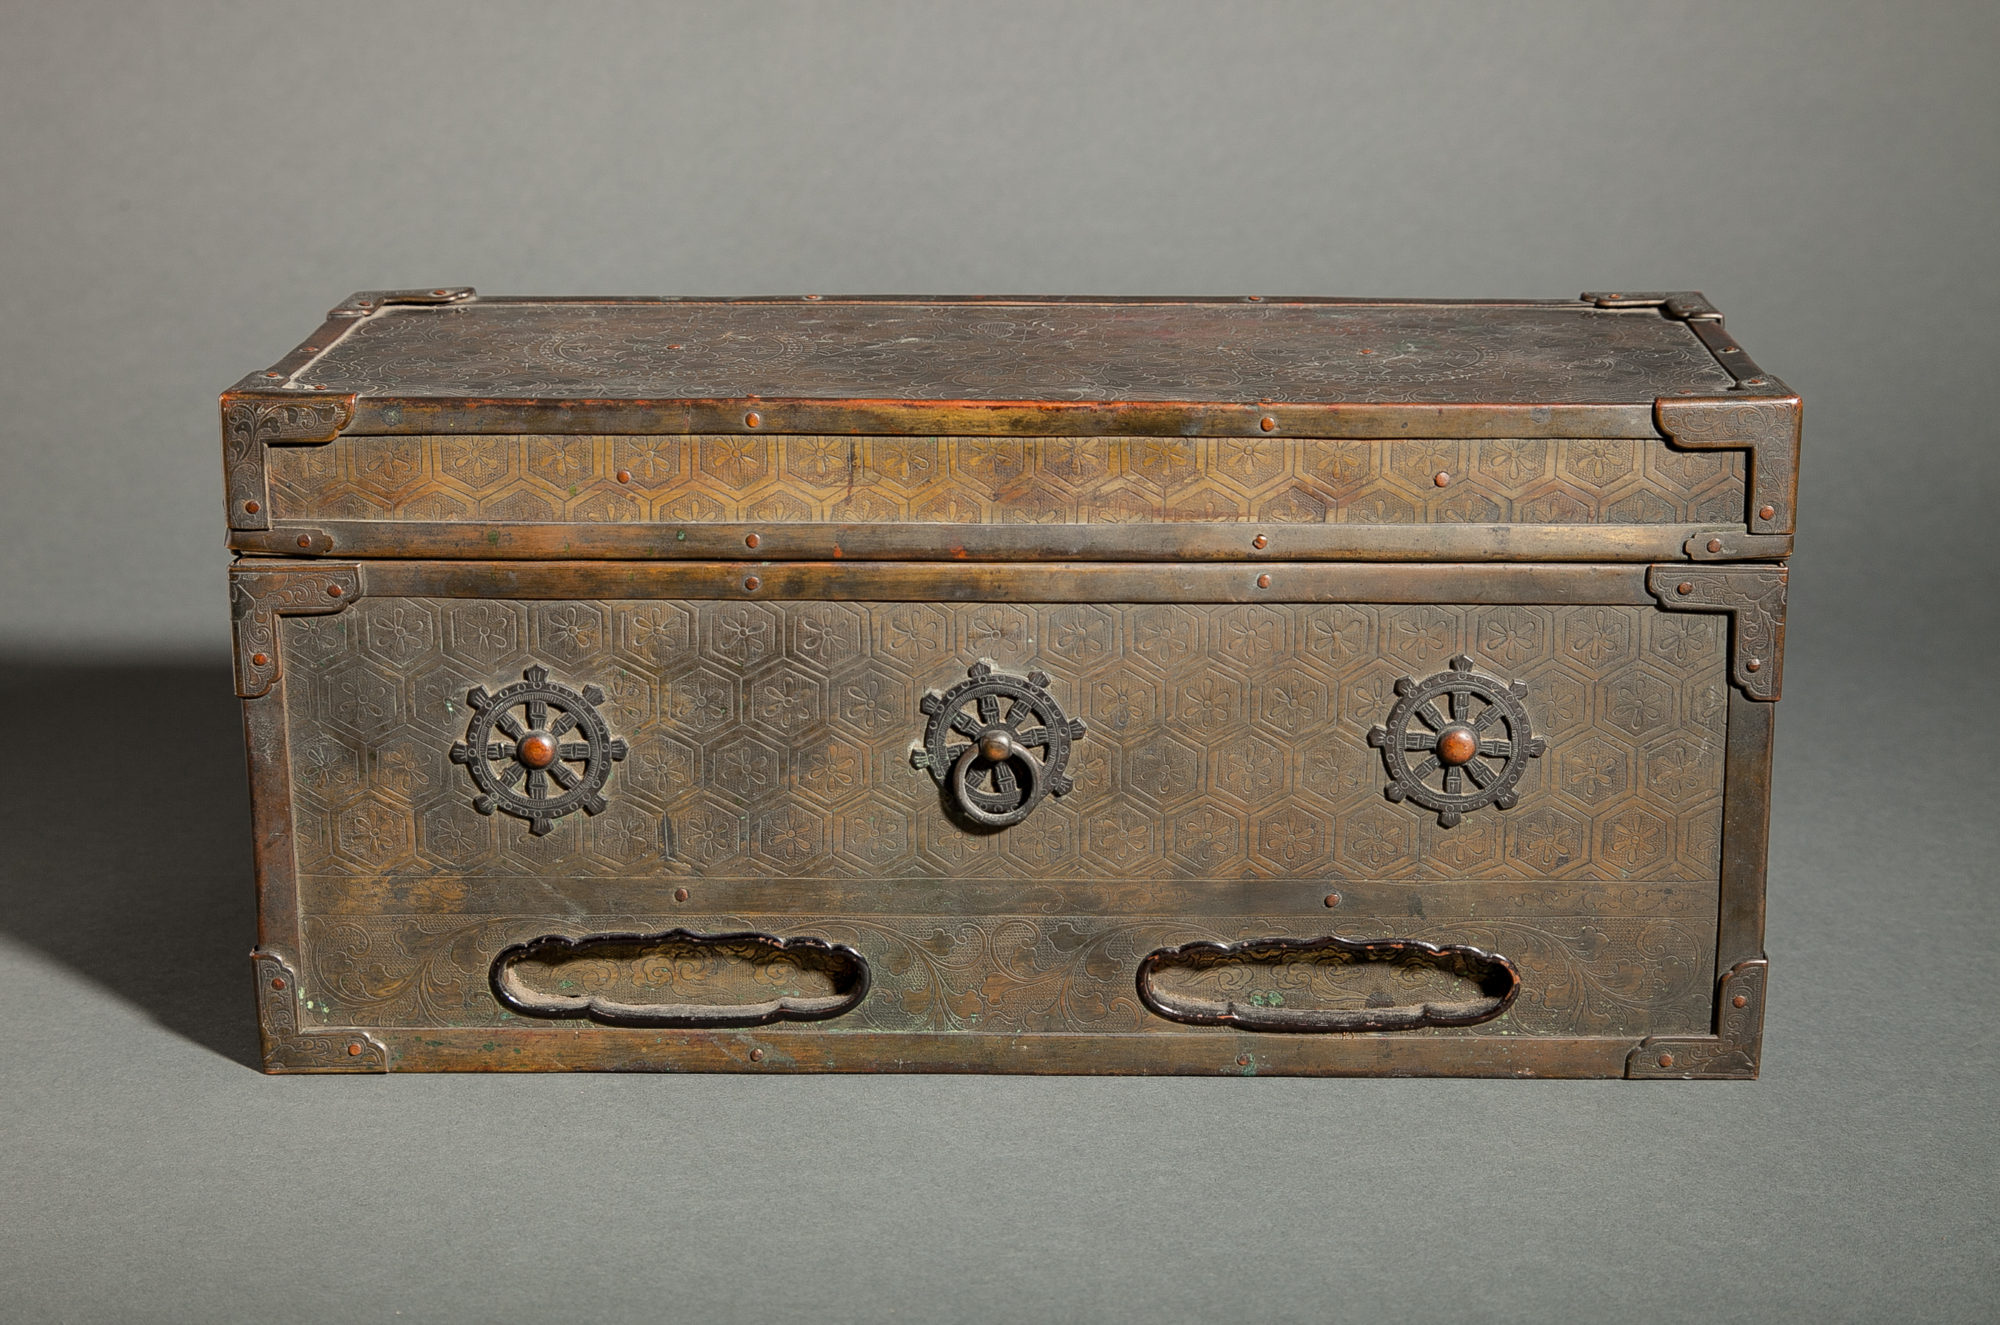 Japanese 16th – 17th Century Bronze Sutra Box